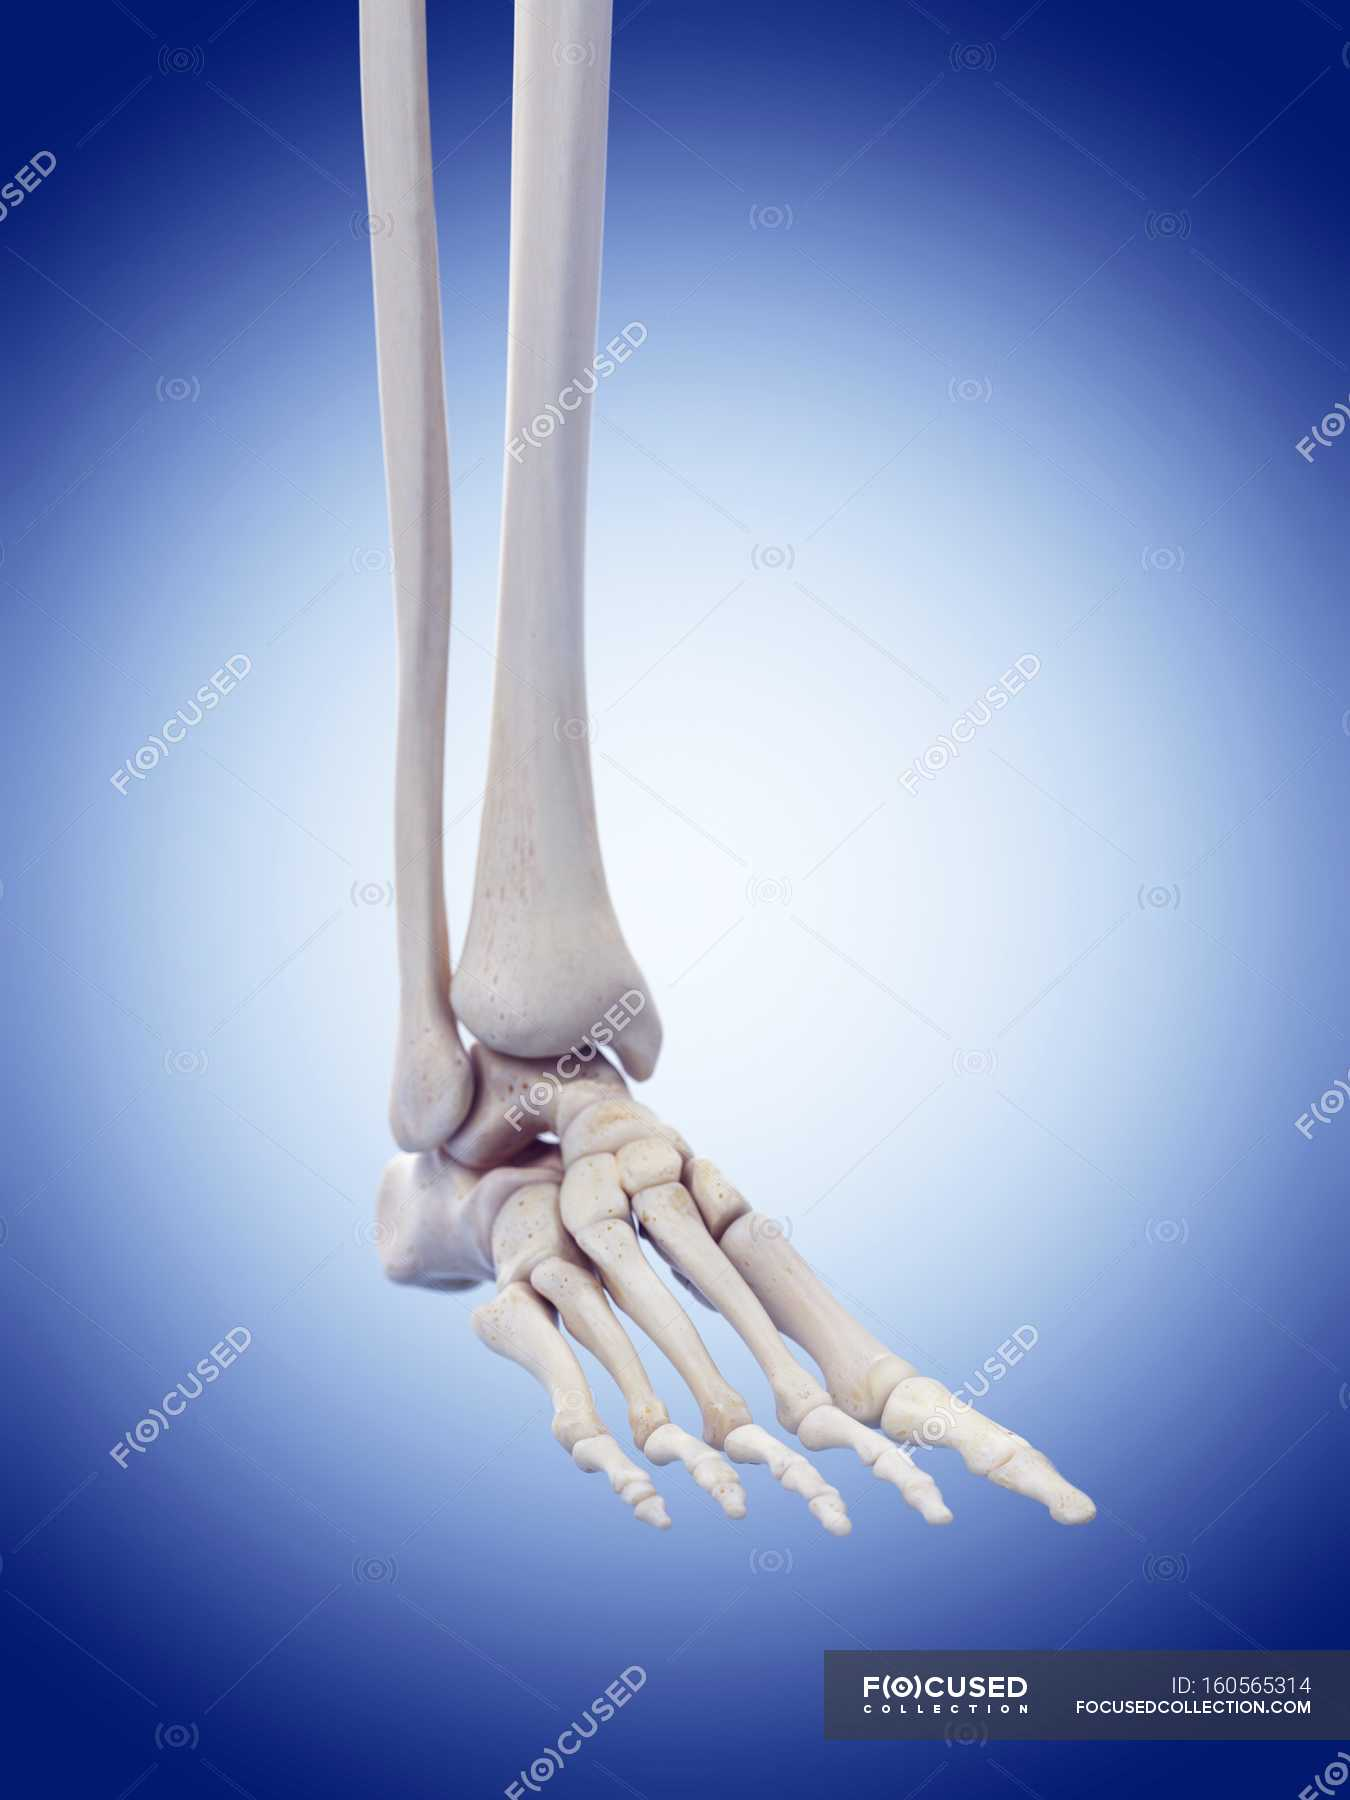 Old Fashioned Pictures Of Human Foot Bones Motif - Human Anatomy ...